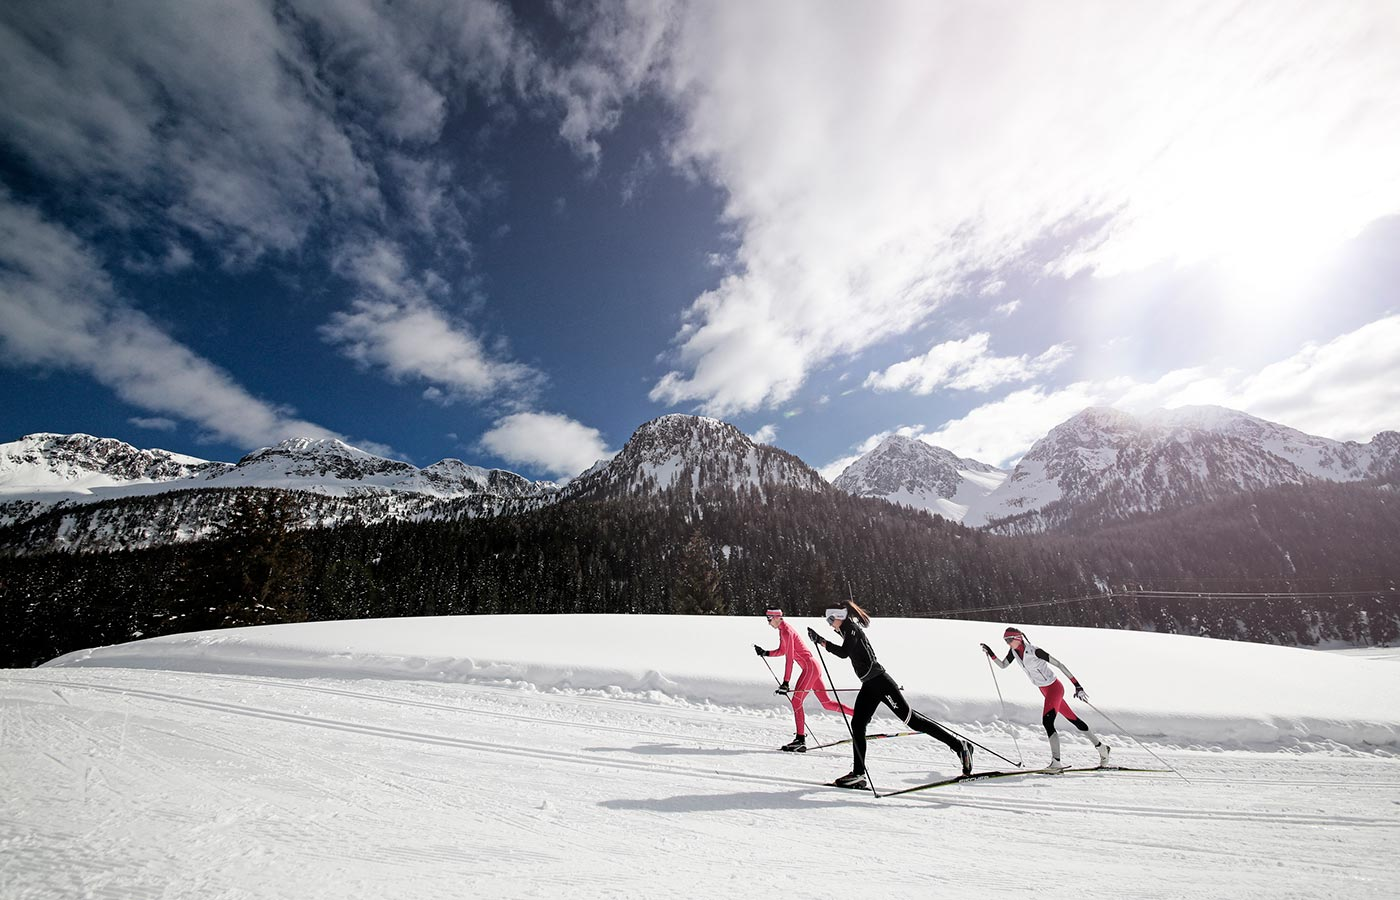 Skiers spend a day moena in winter